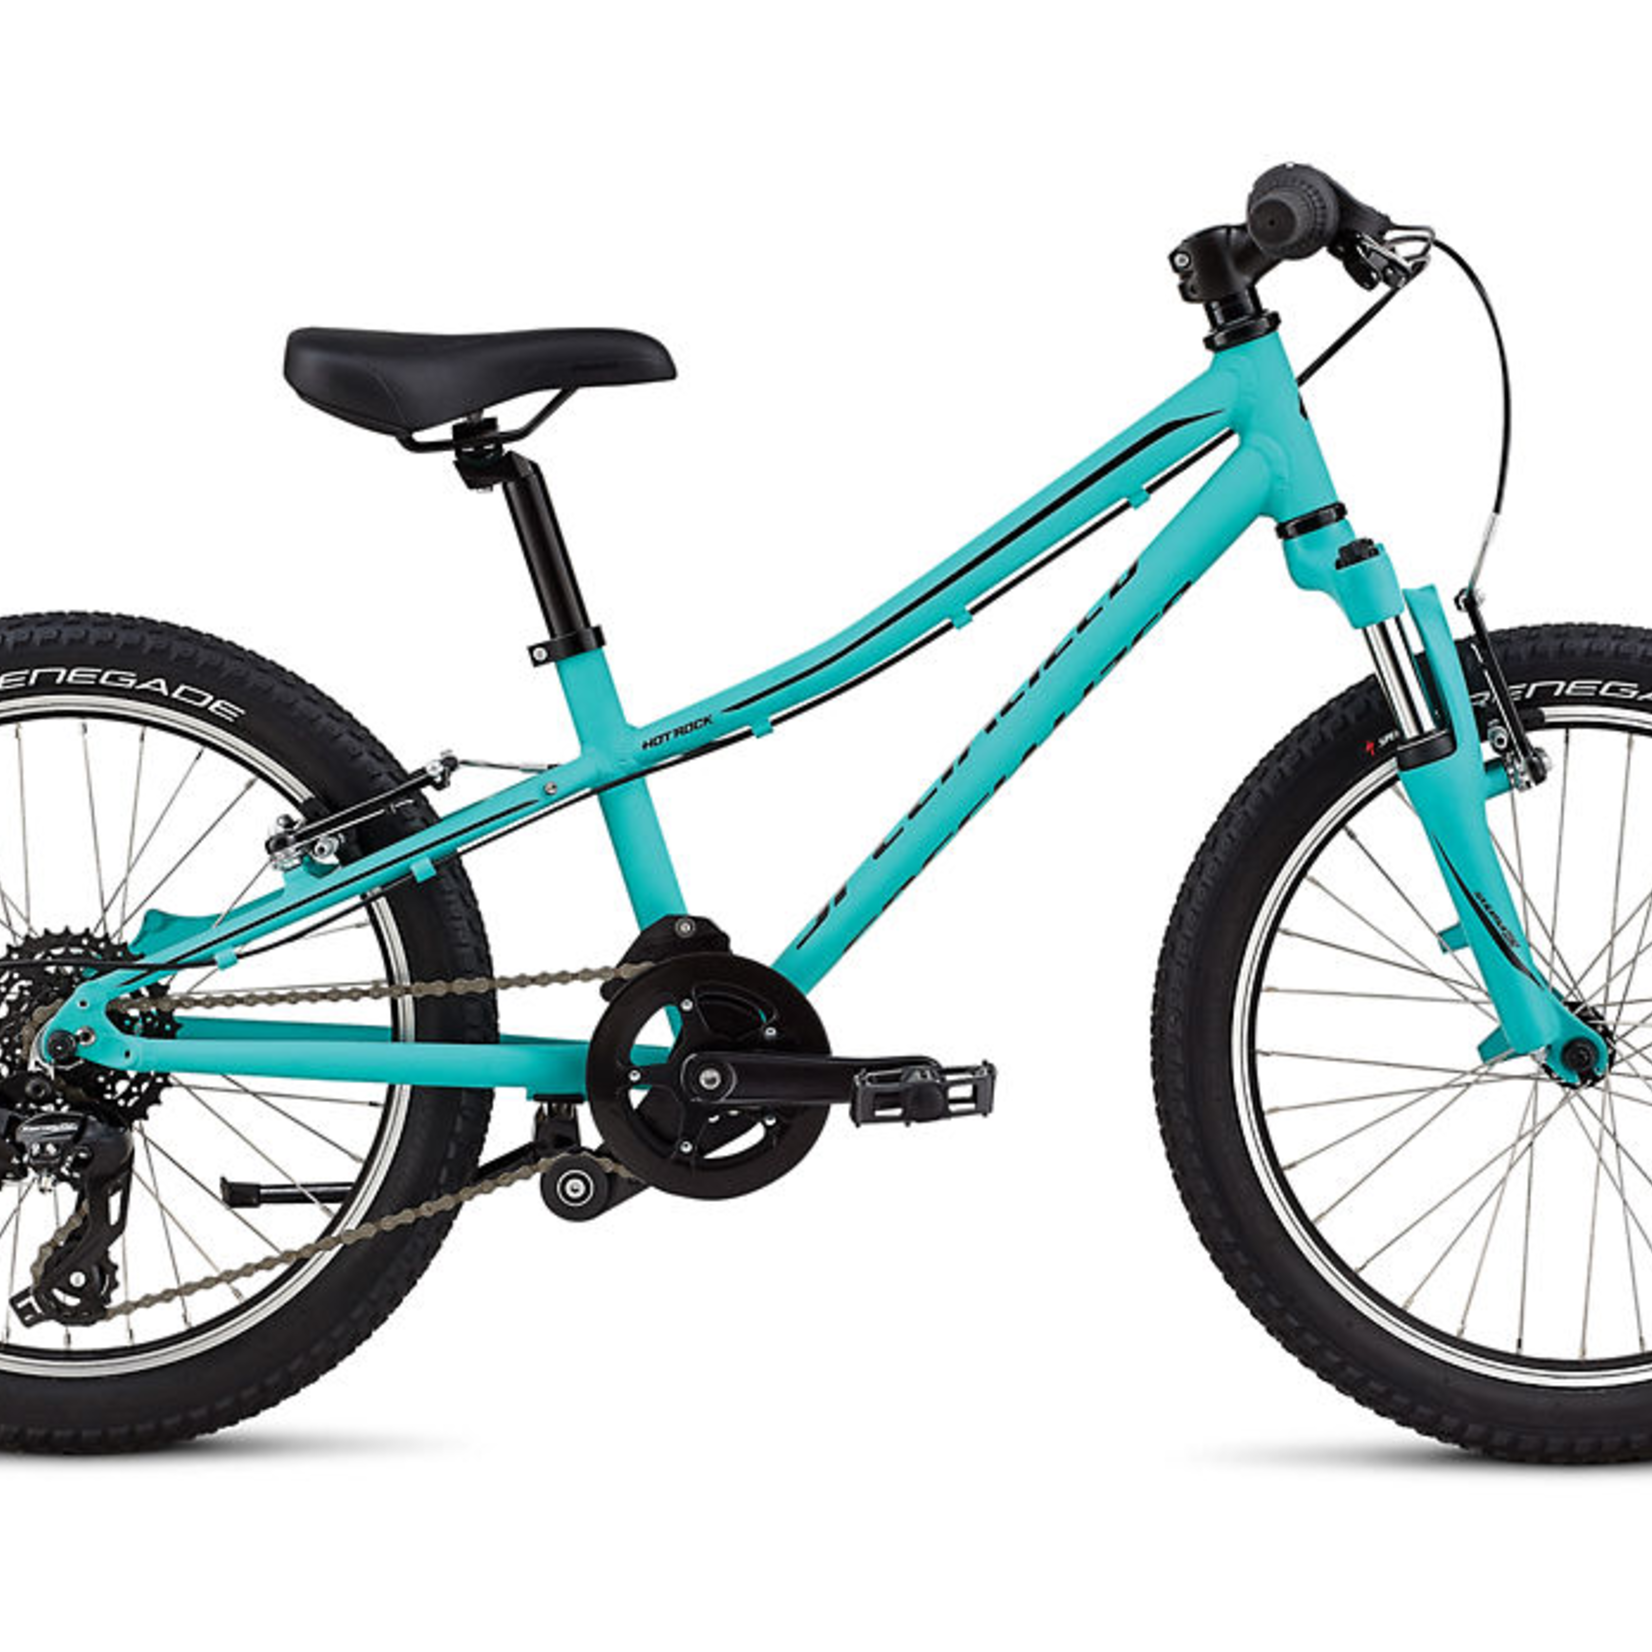 Specialized HTRK 20 ACDMNT/BLK 9